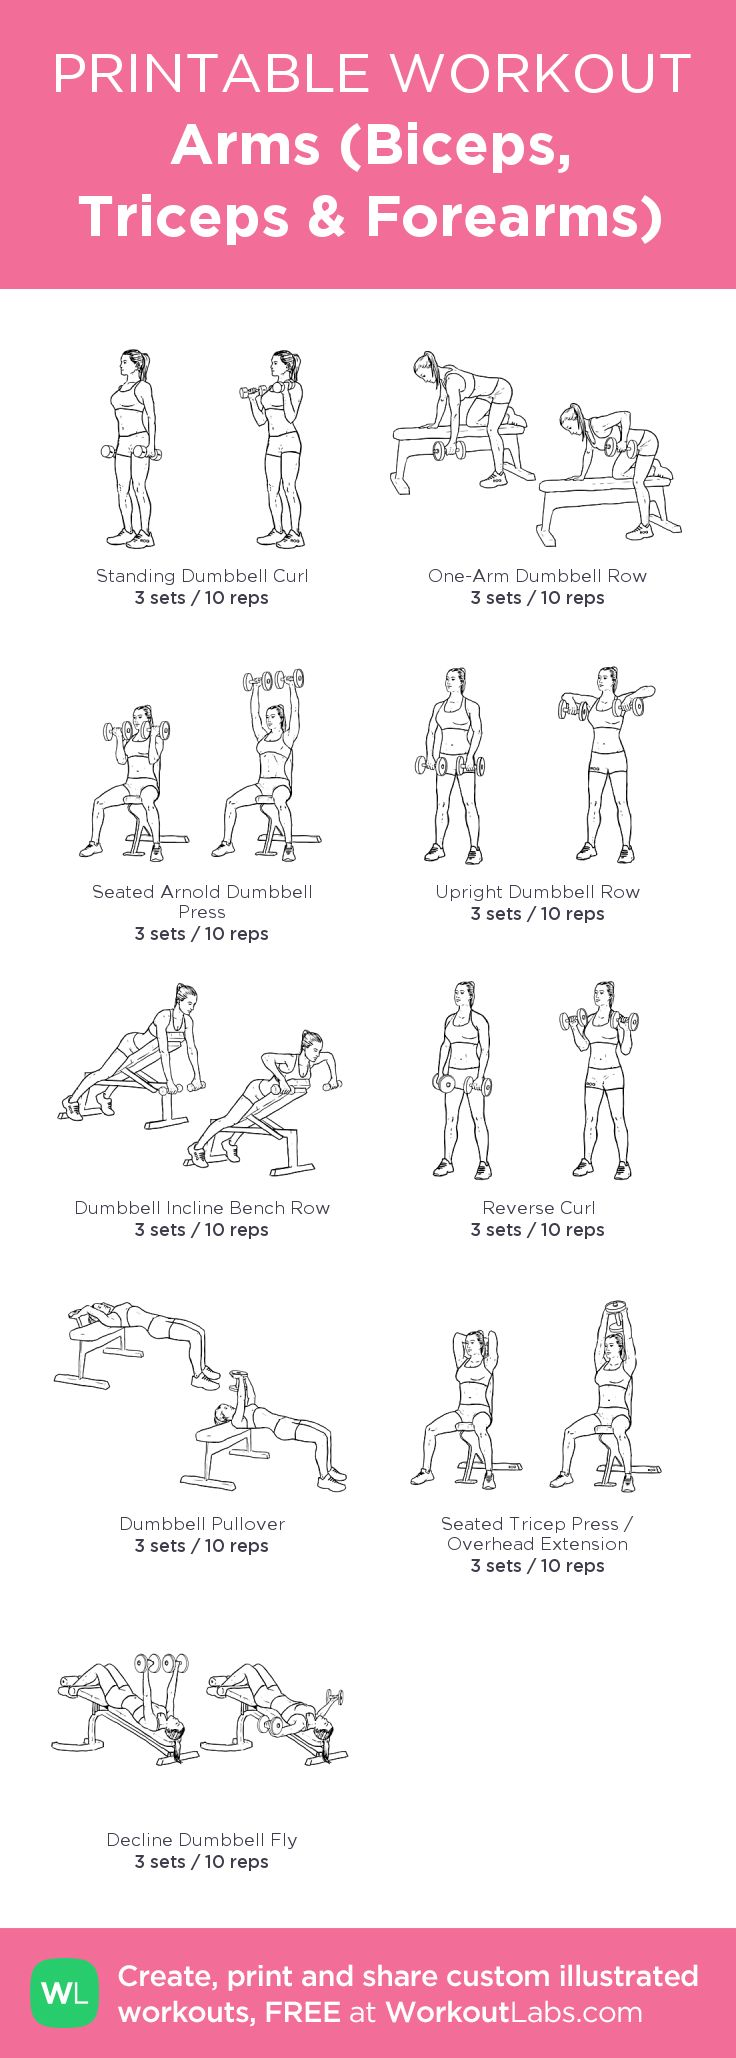 Arms (Biceps, Triceps & Forearms)